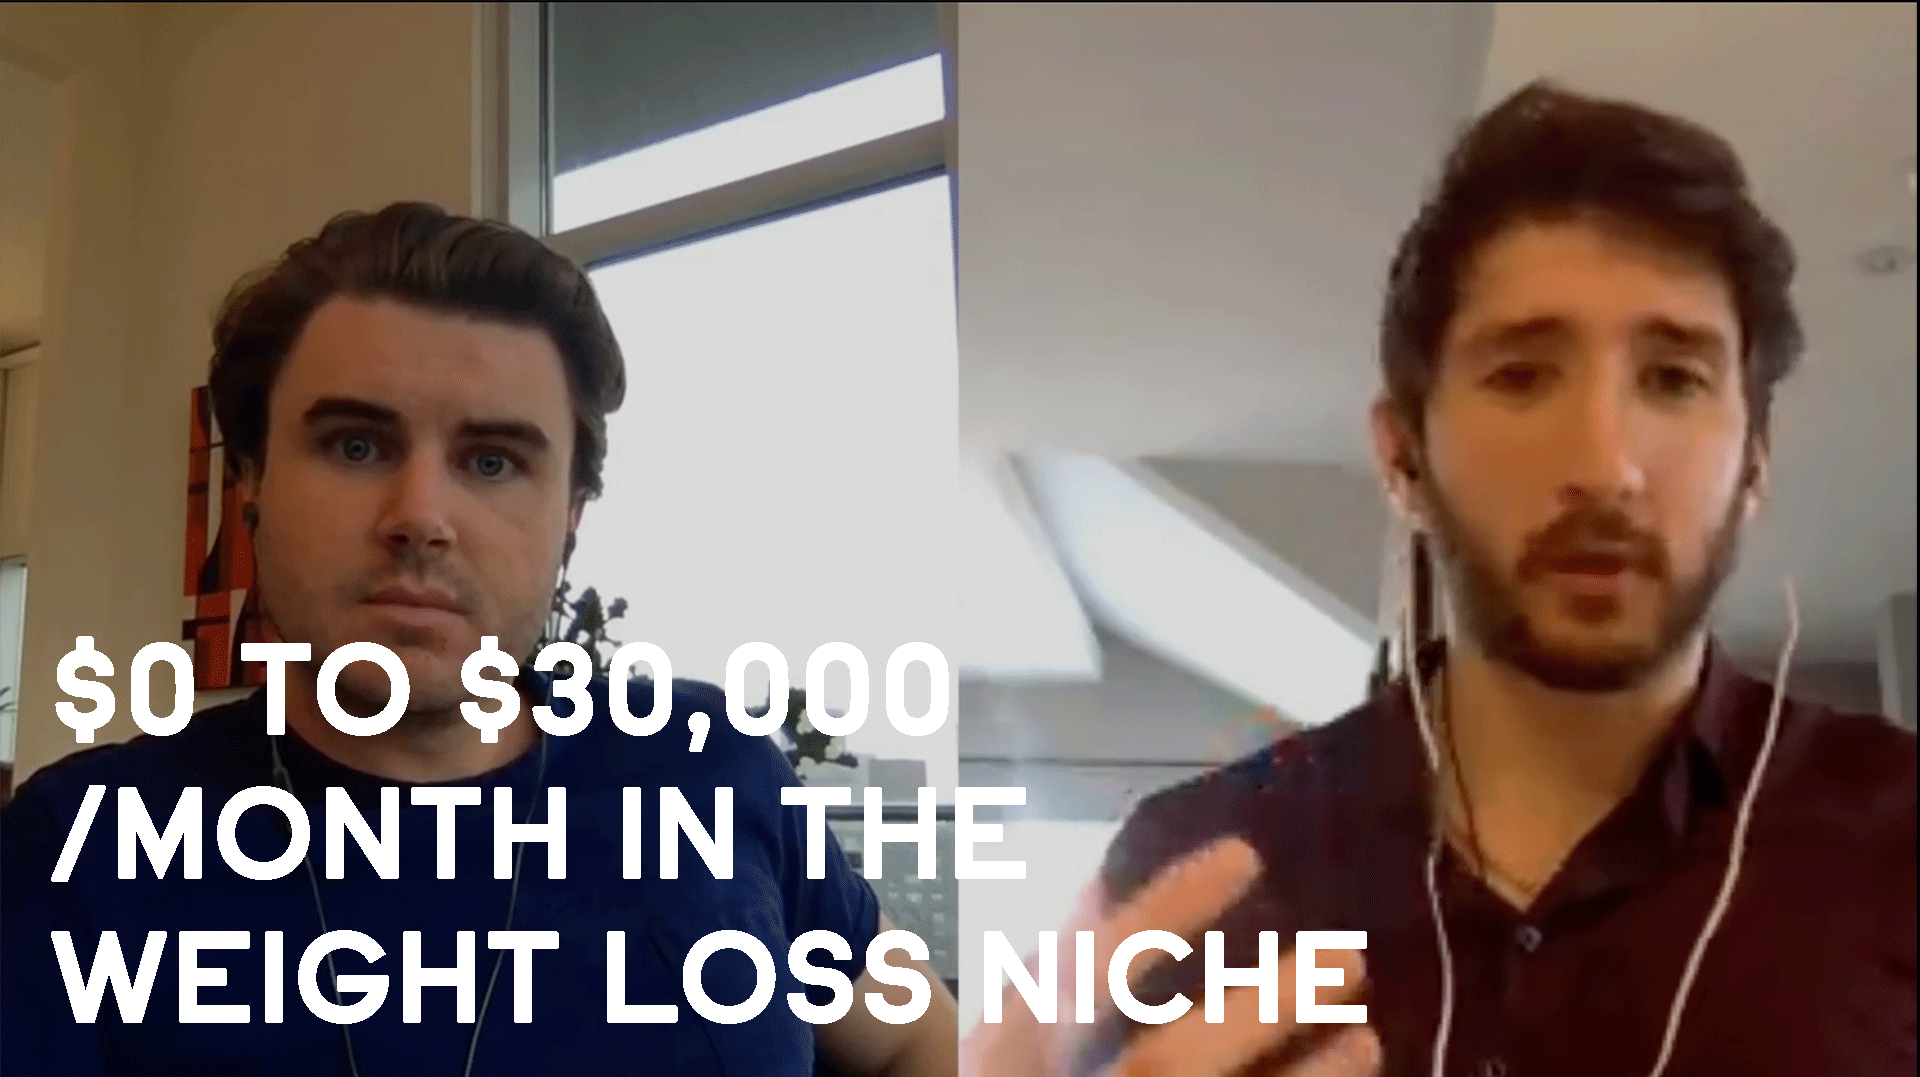 How Andrew Went From $0 to $30,000 /Moth In The Weight Loss Niche